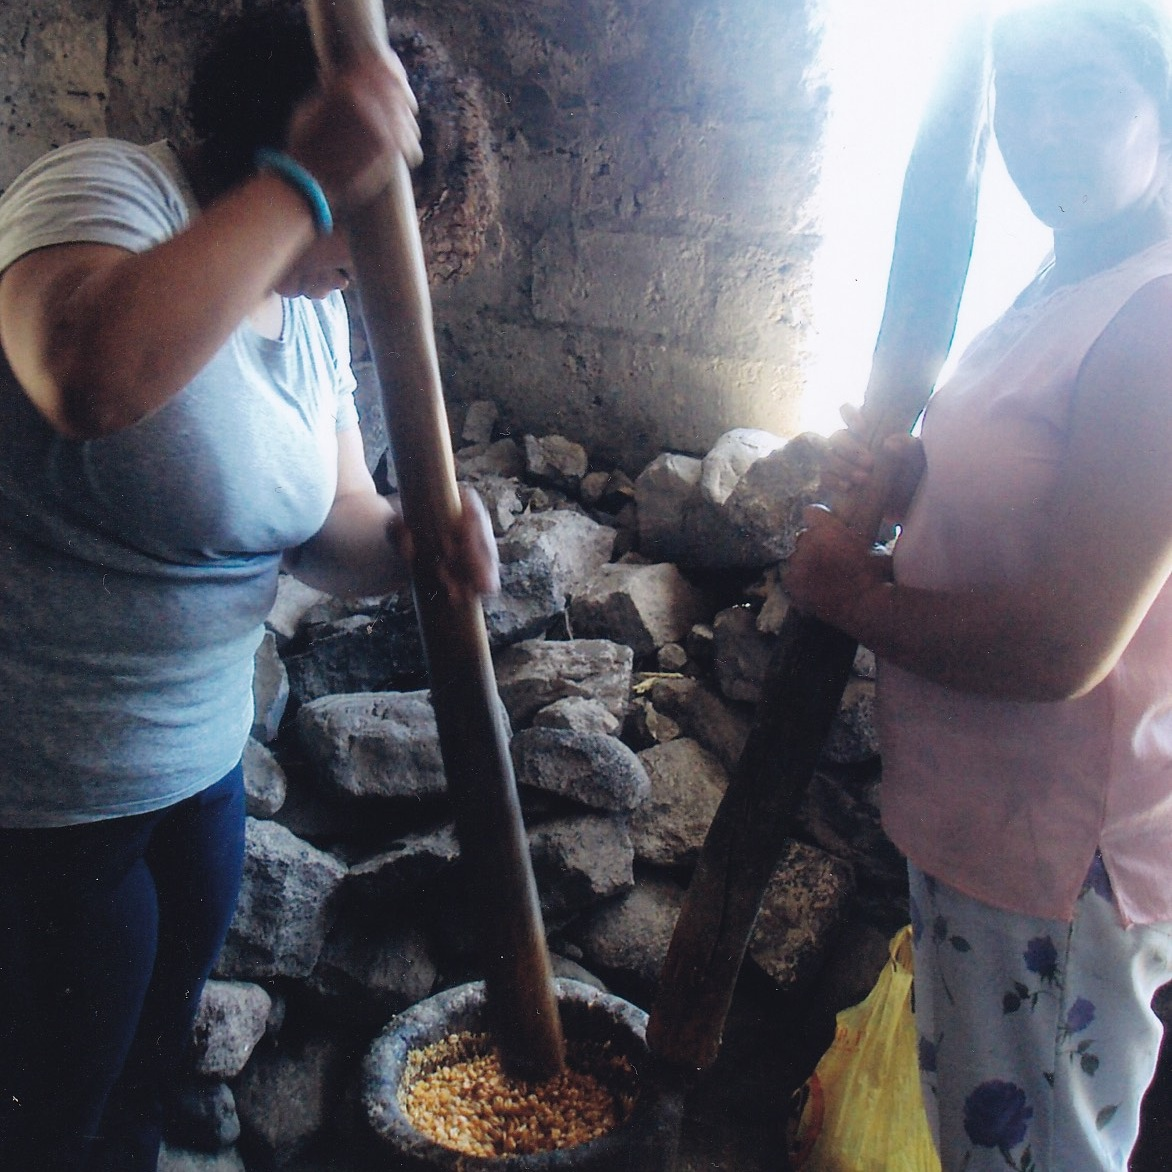 Margarida works with her cousin to grind cornmeal for cachupa with the pilon (pestle and mortar) in Cruzinha, Cape Verde in 2009.